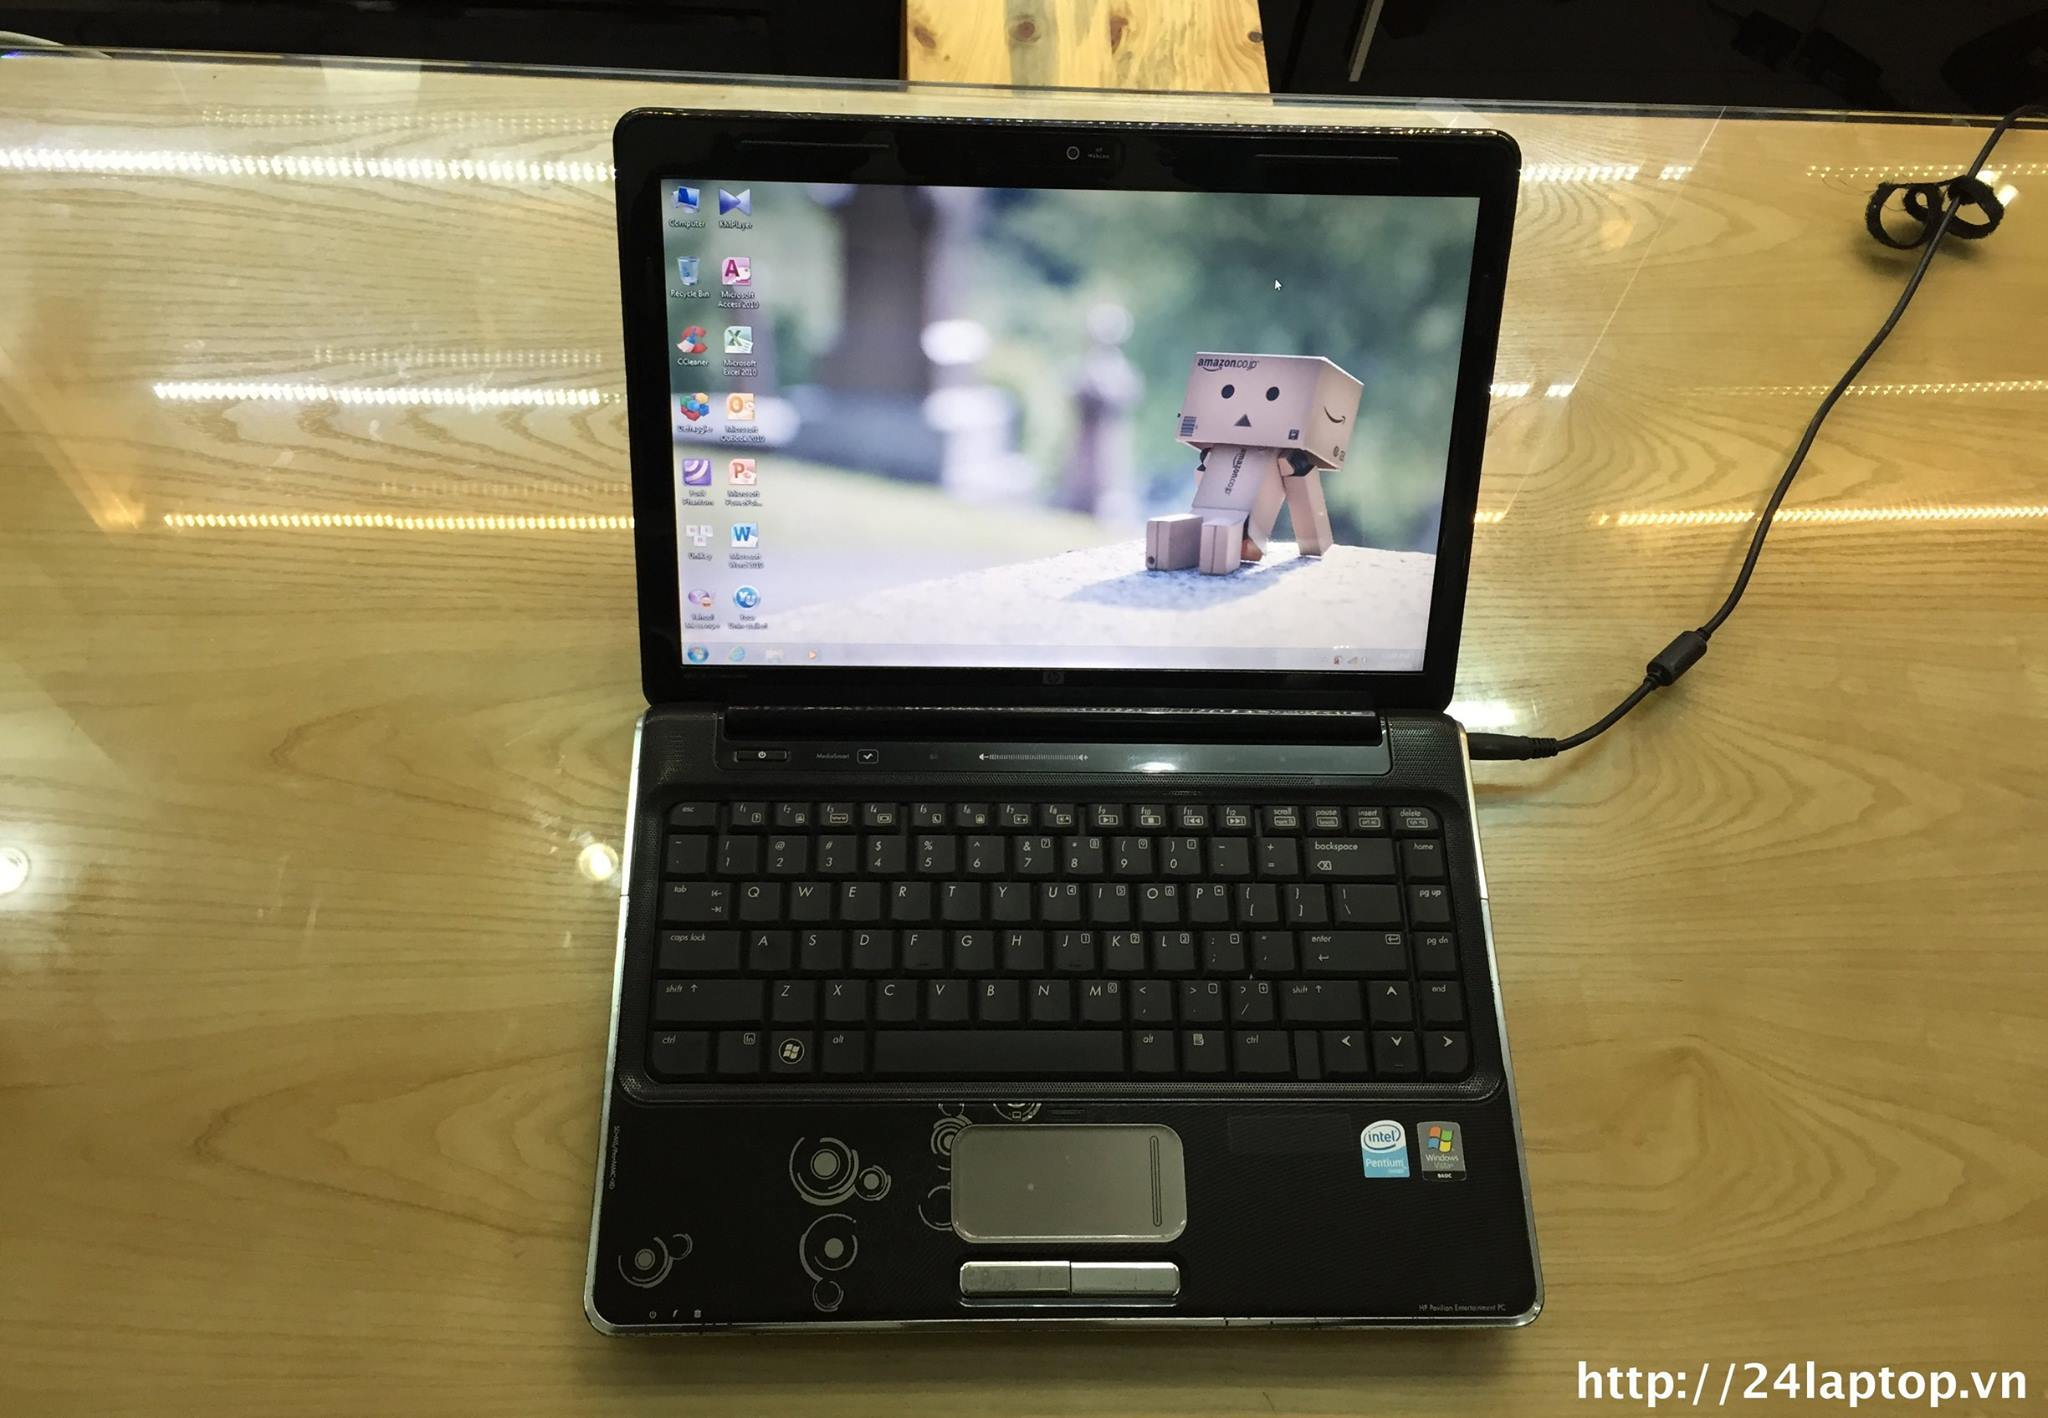 Laptop HP Pavilion DV4 _2.jpg